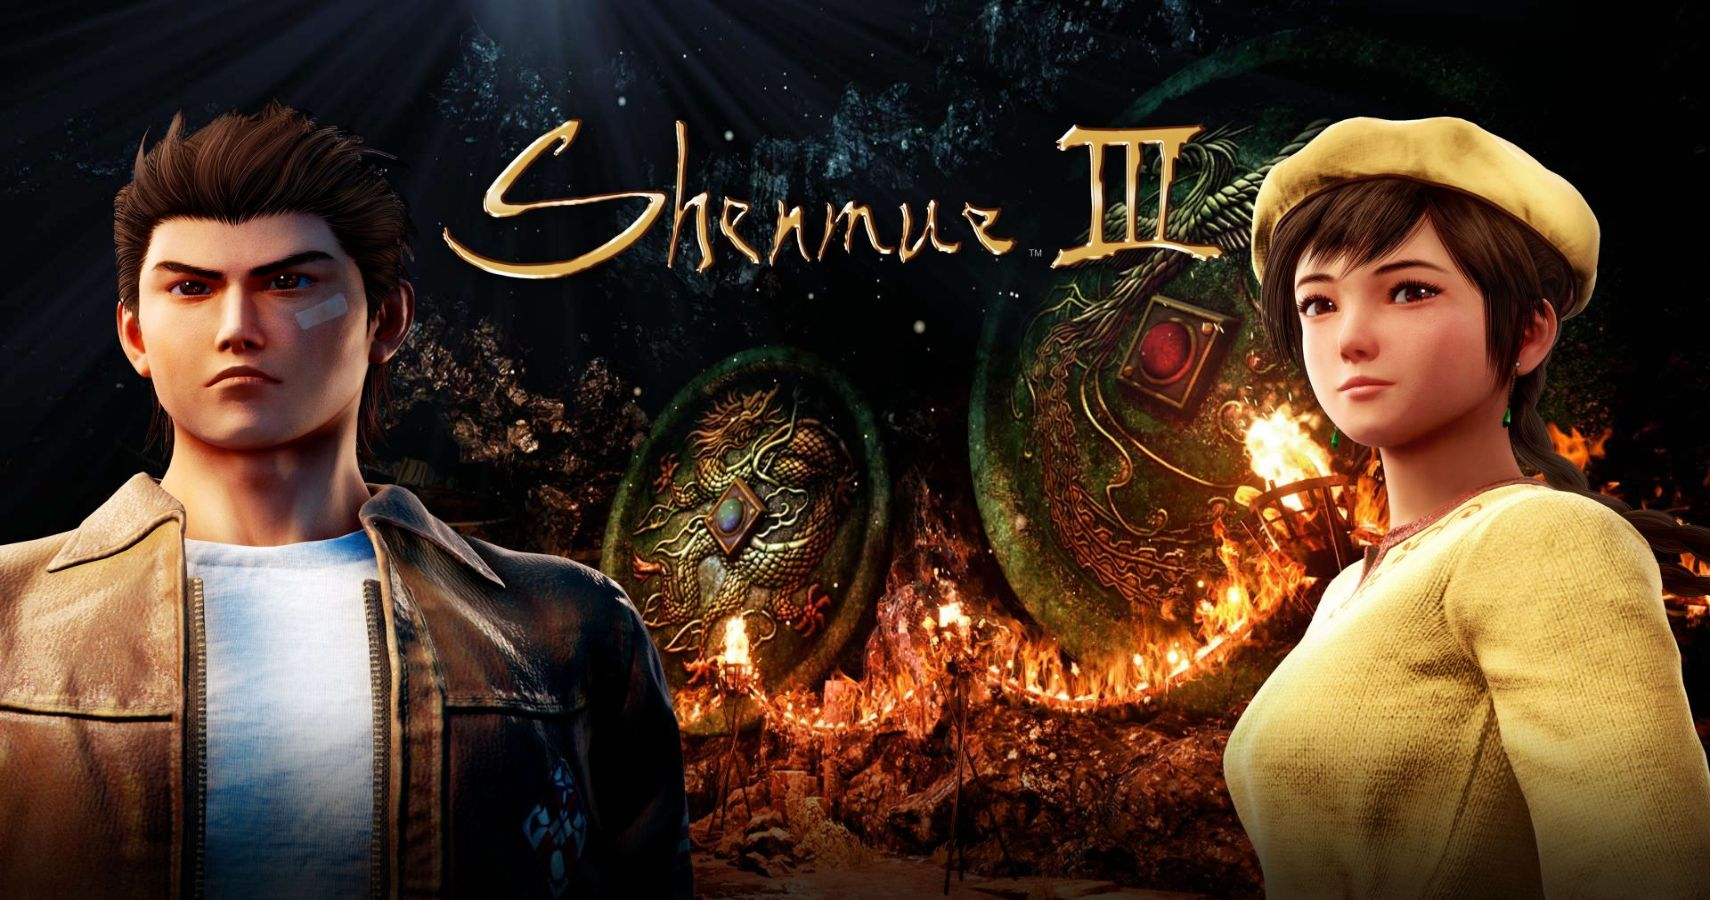 Bad to Worse: Shenmue 3 Developers Withholding Pre-Order Content From Kickstarter Backers